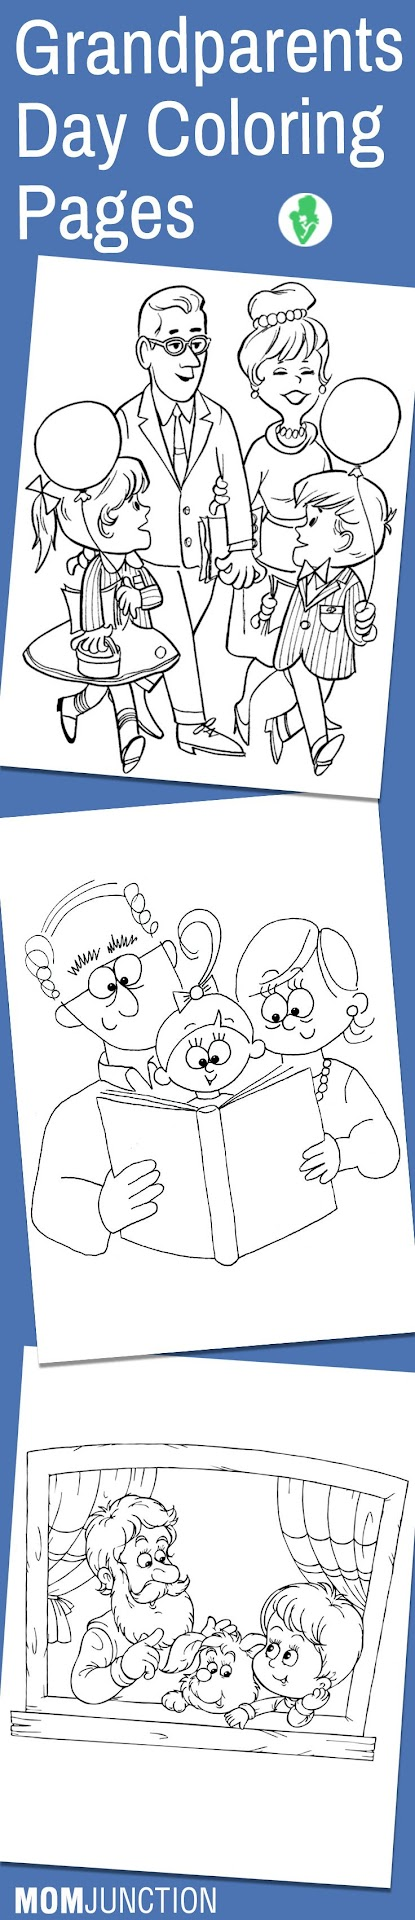 Top printable shopkin coloring pages just design for Coloring pages for grandparents